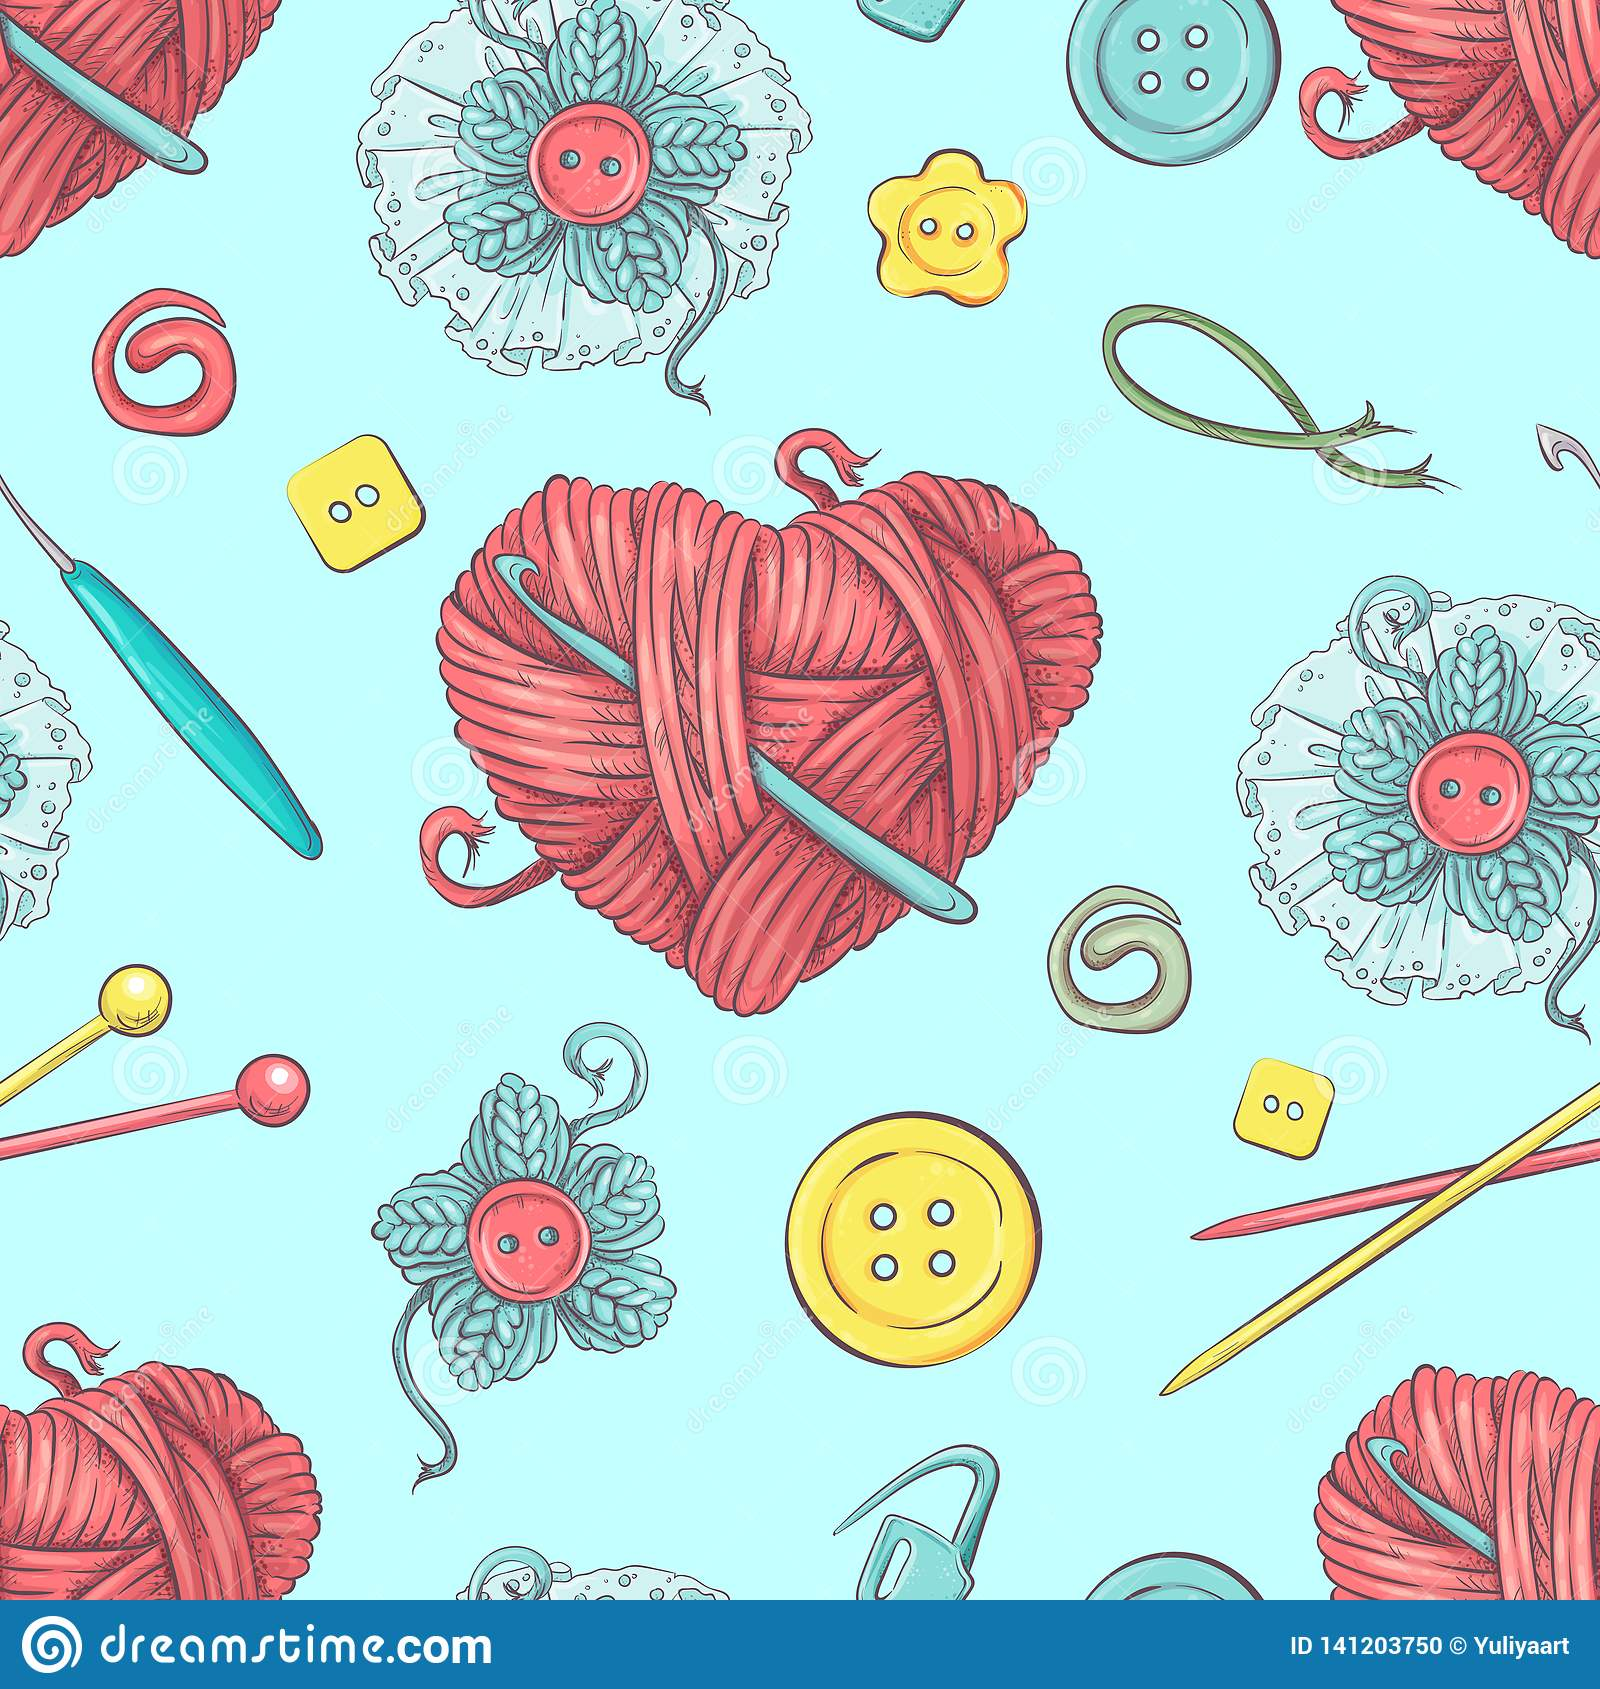 Cute seamless pattern of balls of yarn, buttons, skeins of yarn or knitting and crocheting.